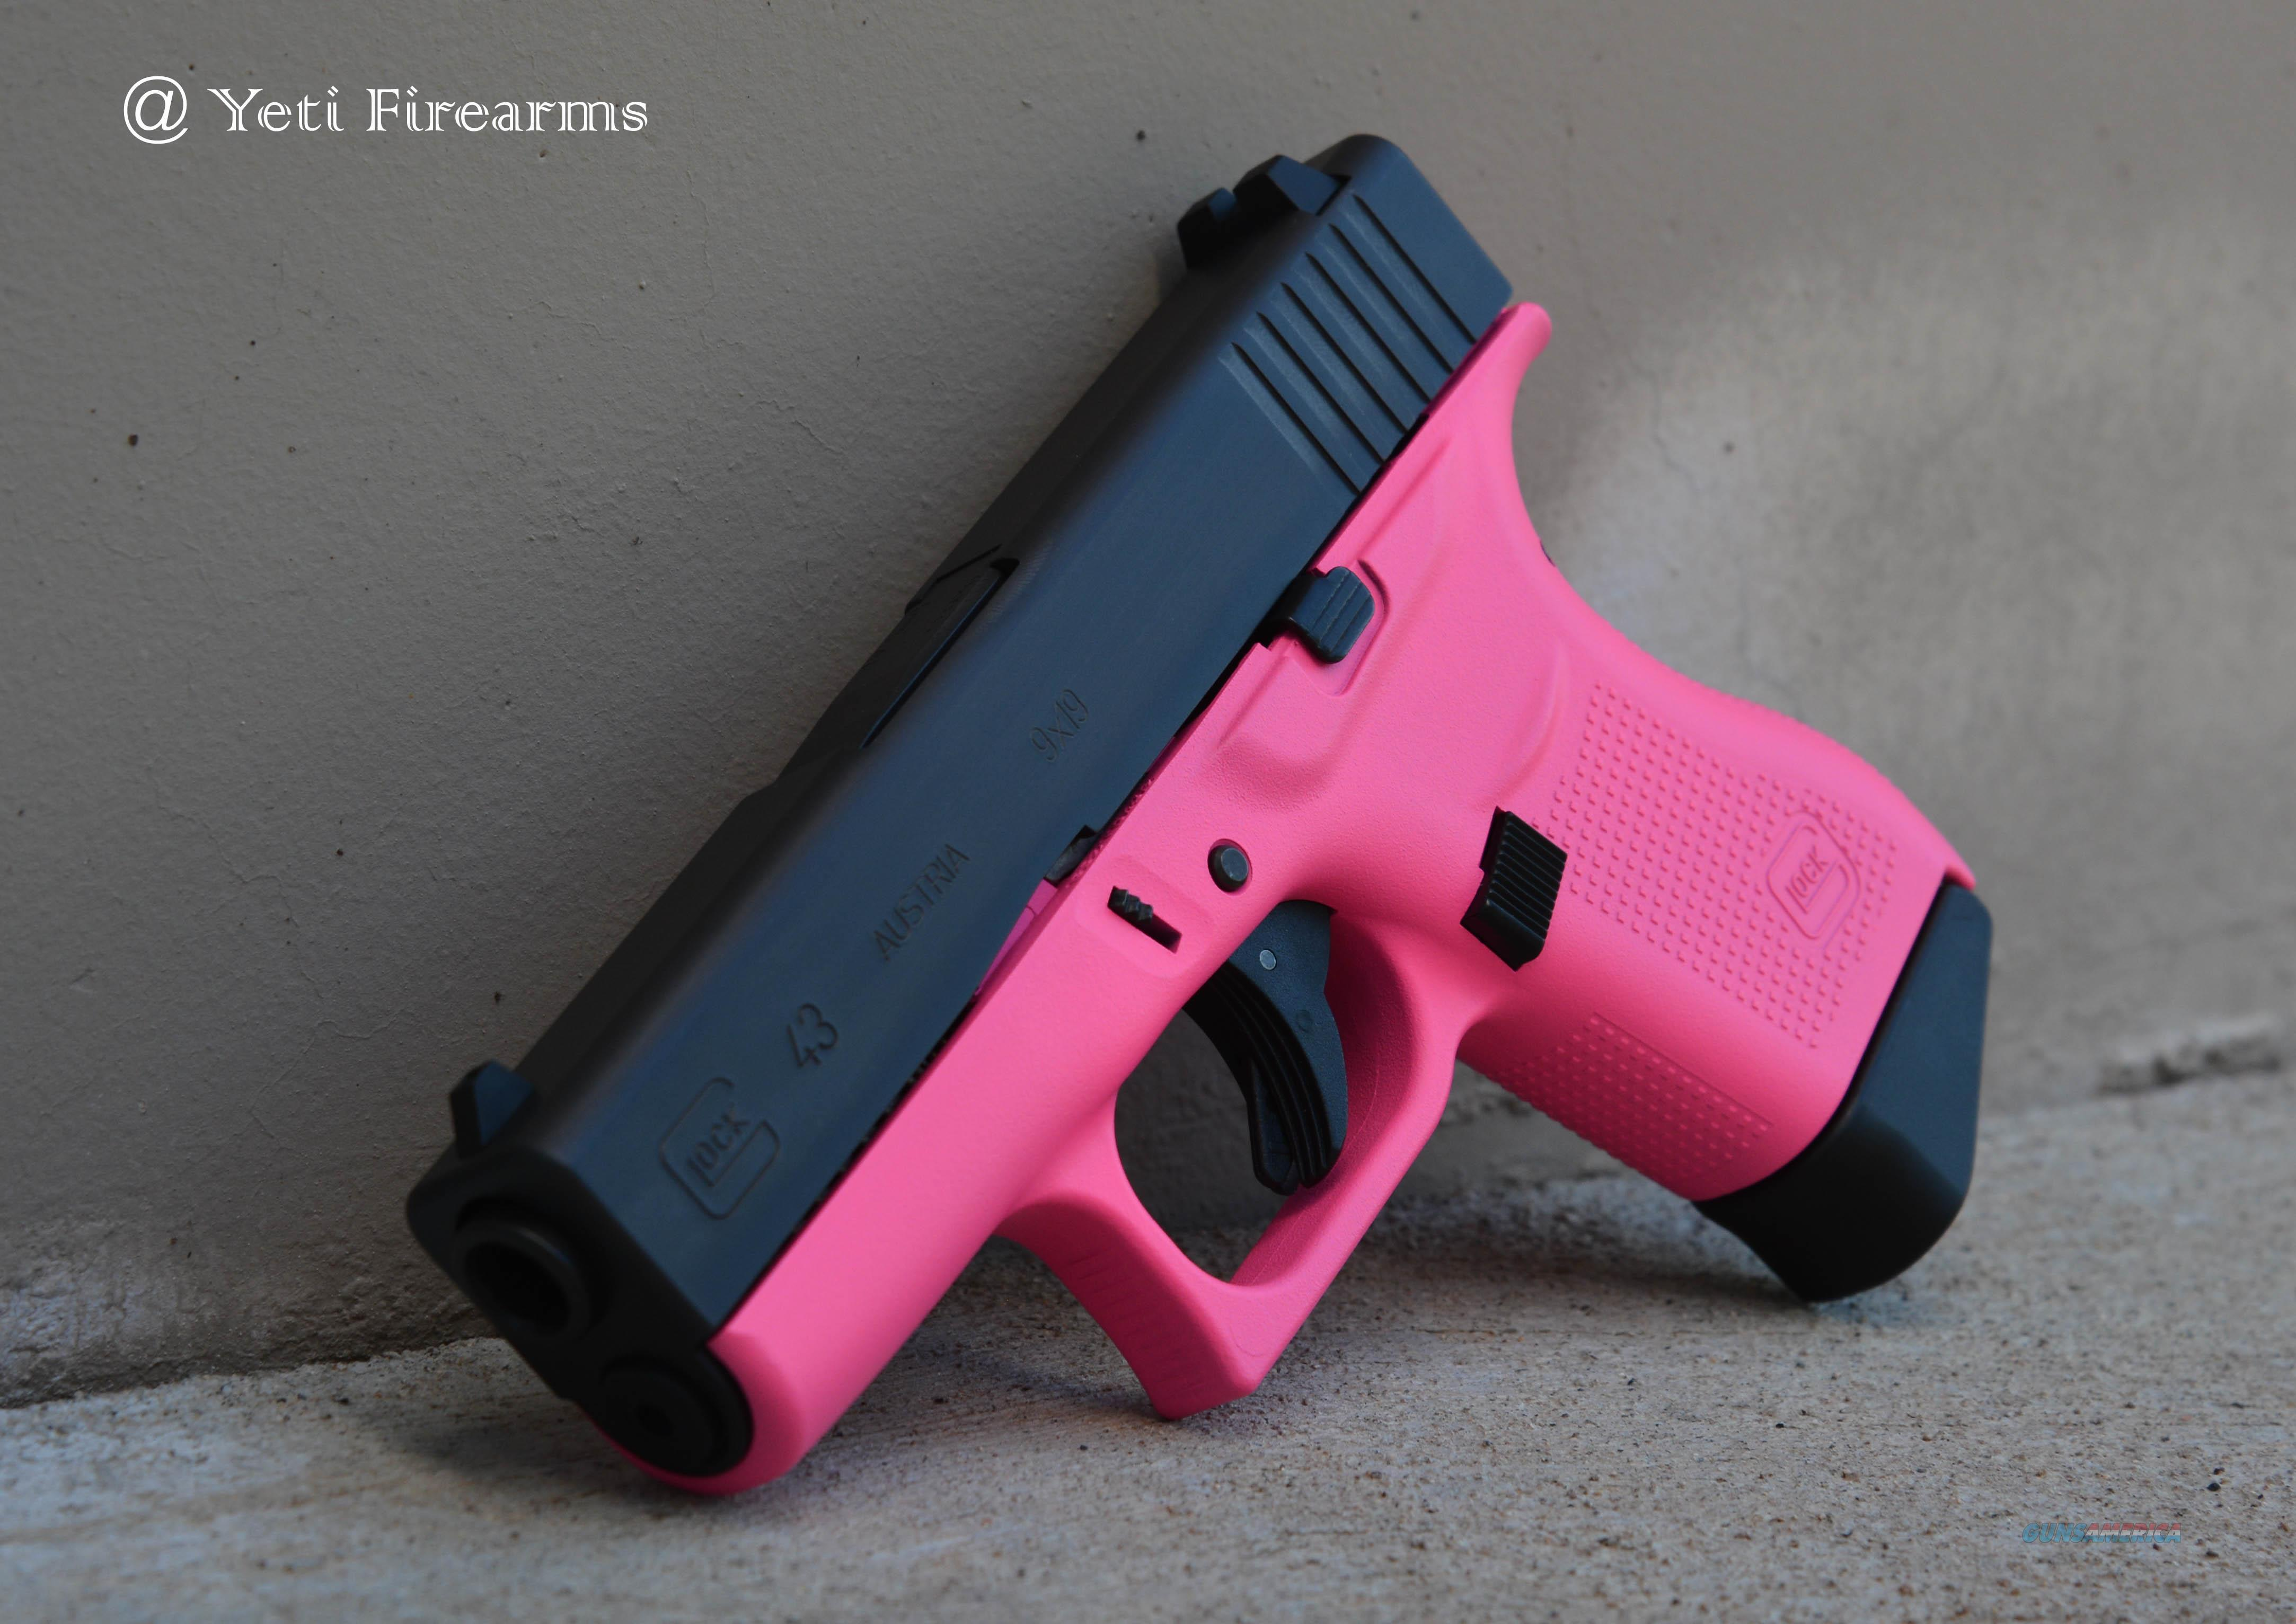 X-Werks Glock 43 9mm Hot Pink No CC Fee 2 Mags  Guns > Pistols > Glock Pistols > 43